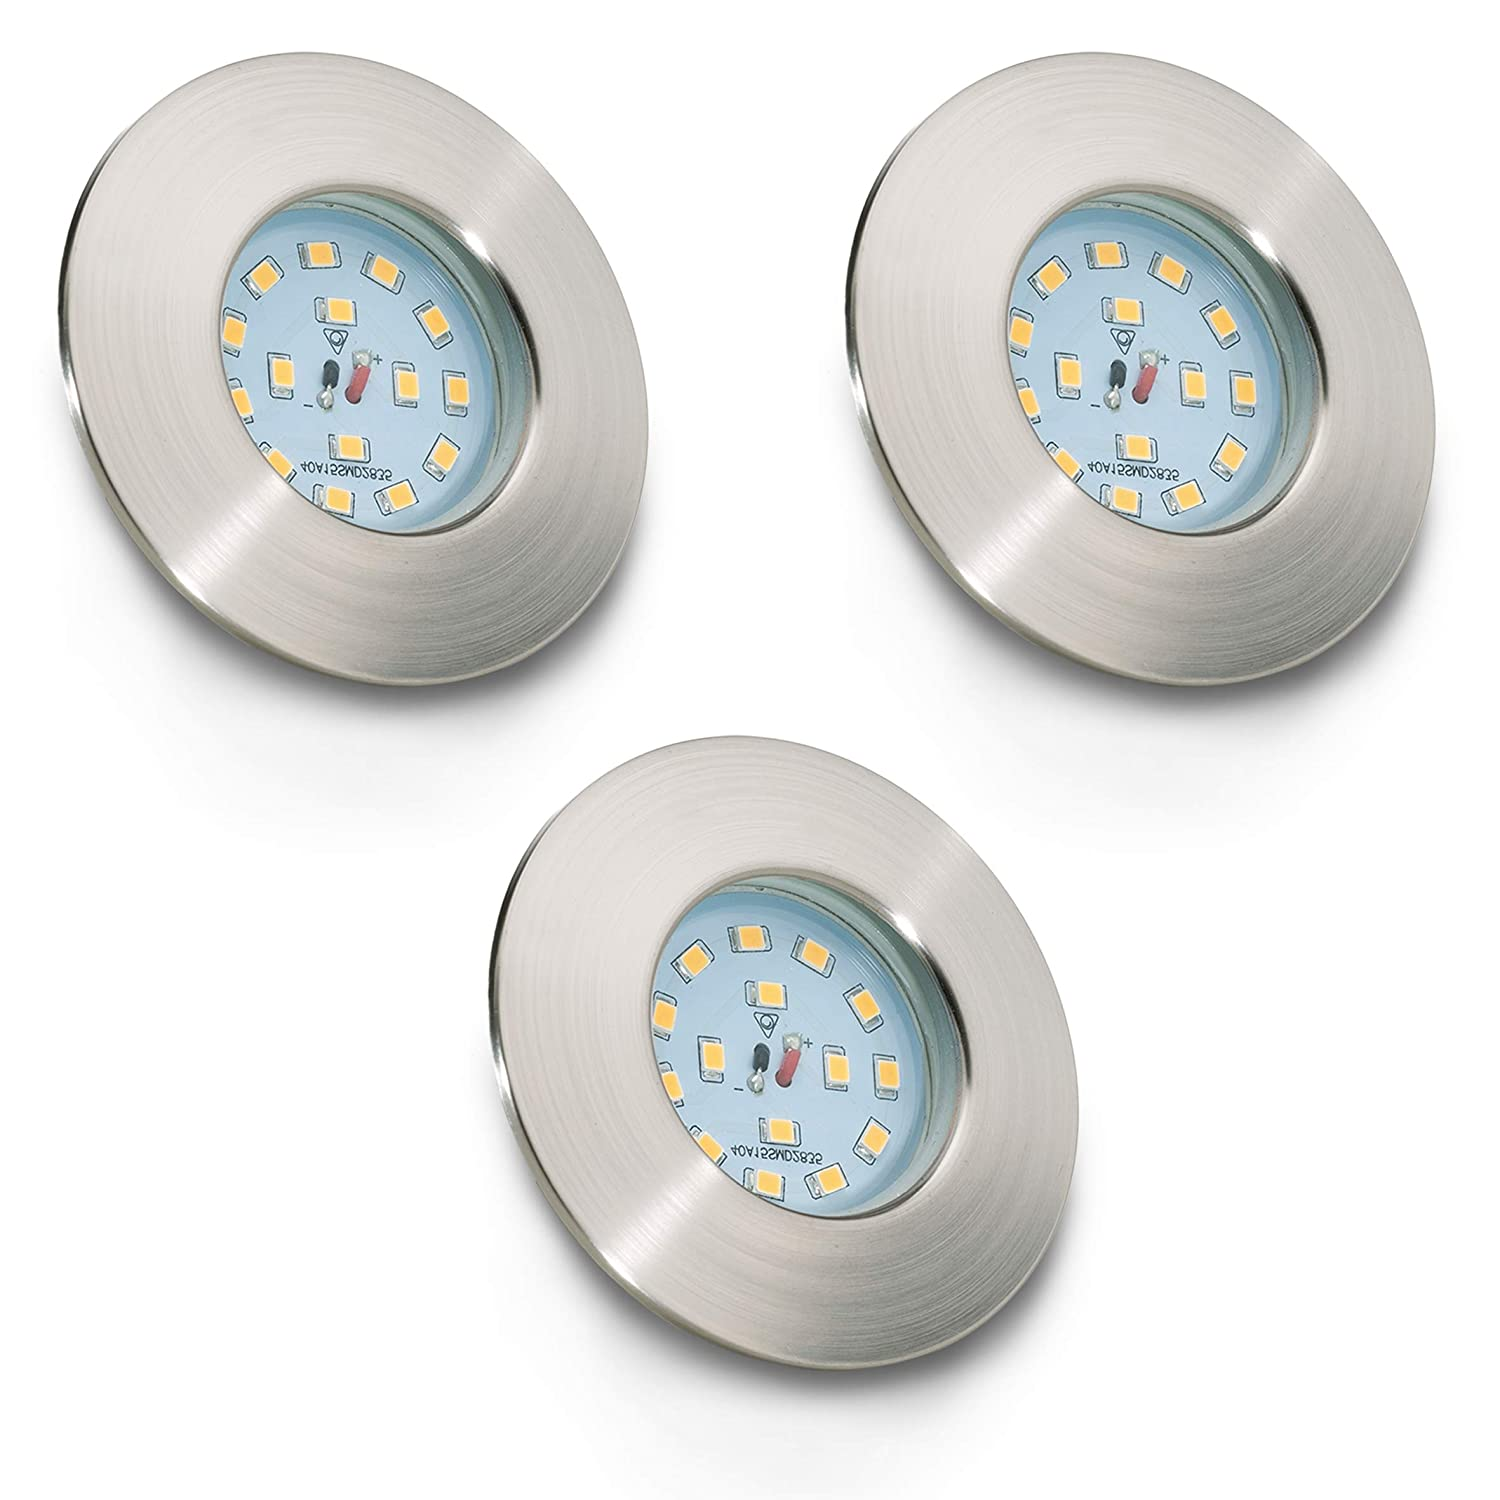 Faretti LED ad incasso I set da 3 I plafoniere ultrasottili da soffitto e per l'illuminazione da interno I resistenti all'acqua I luci rotonde, bianche I corpo metallo, color nickel opaco I luci LED integrate 5 W I 230 V I IP44 [Classe di efficienza energe